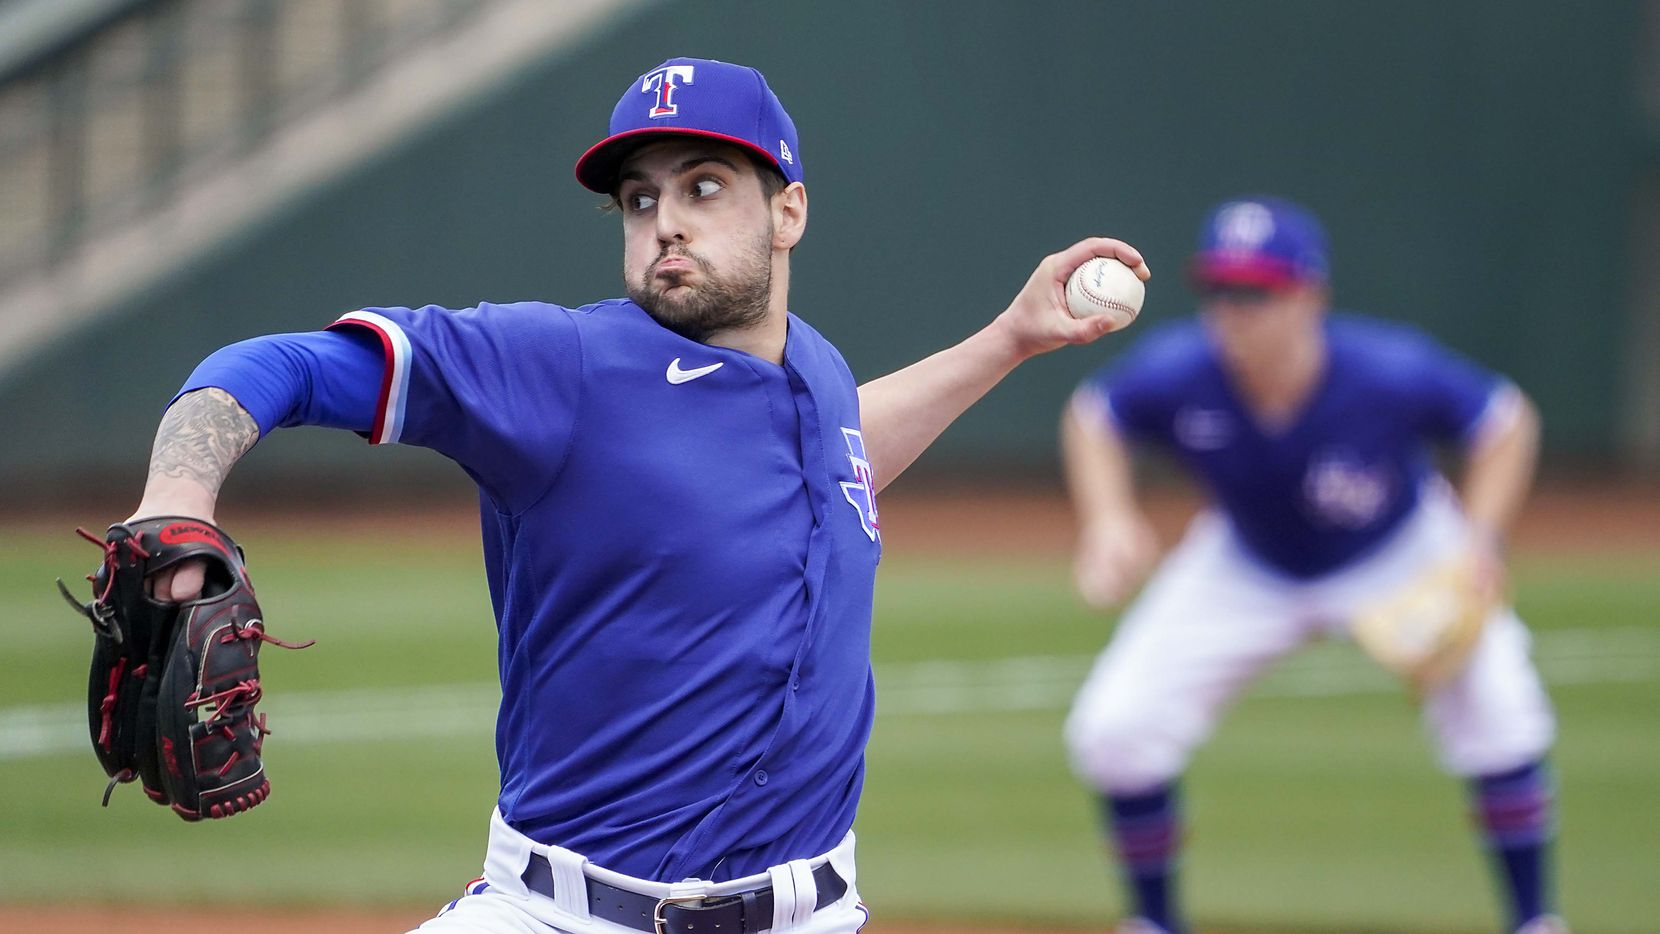 Texas Rangers pitcher Joe Palumbo delivers during the first inning of a spring training game against the San Diego Padres at Surprise Stadium on Thursday, March 4, 2021, in Surprise, Ariz.